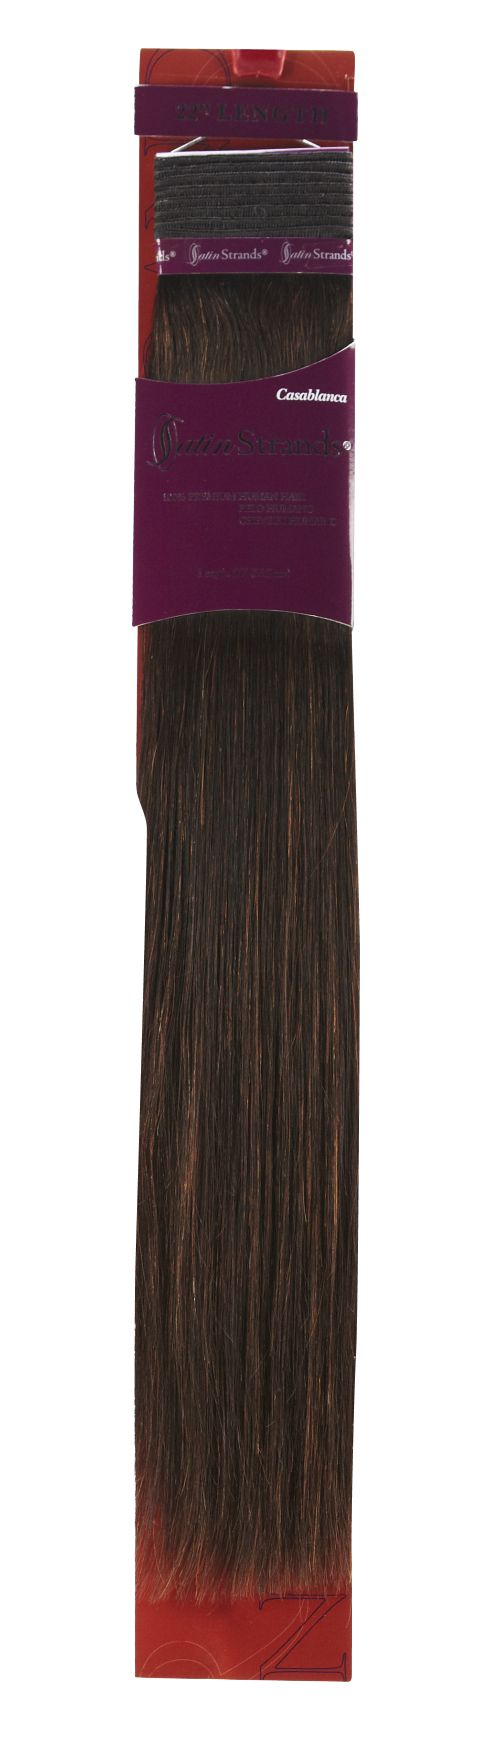 Satin Strand Hair Extensions 33